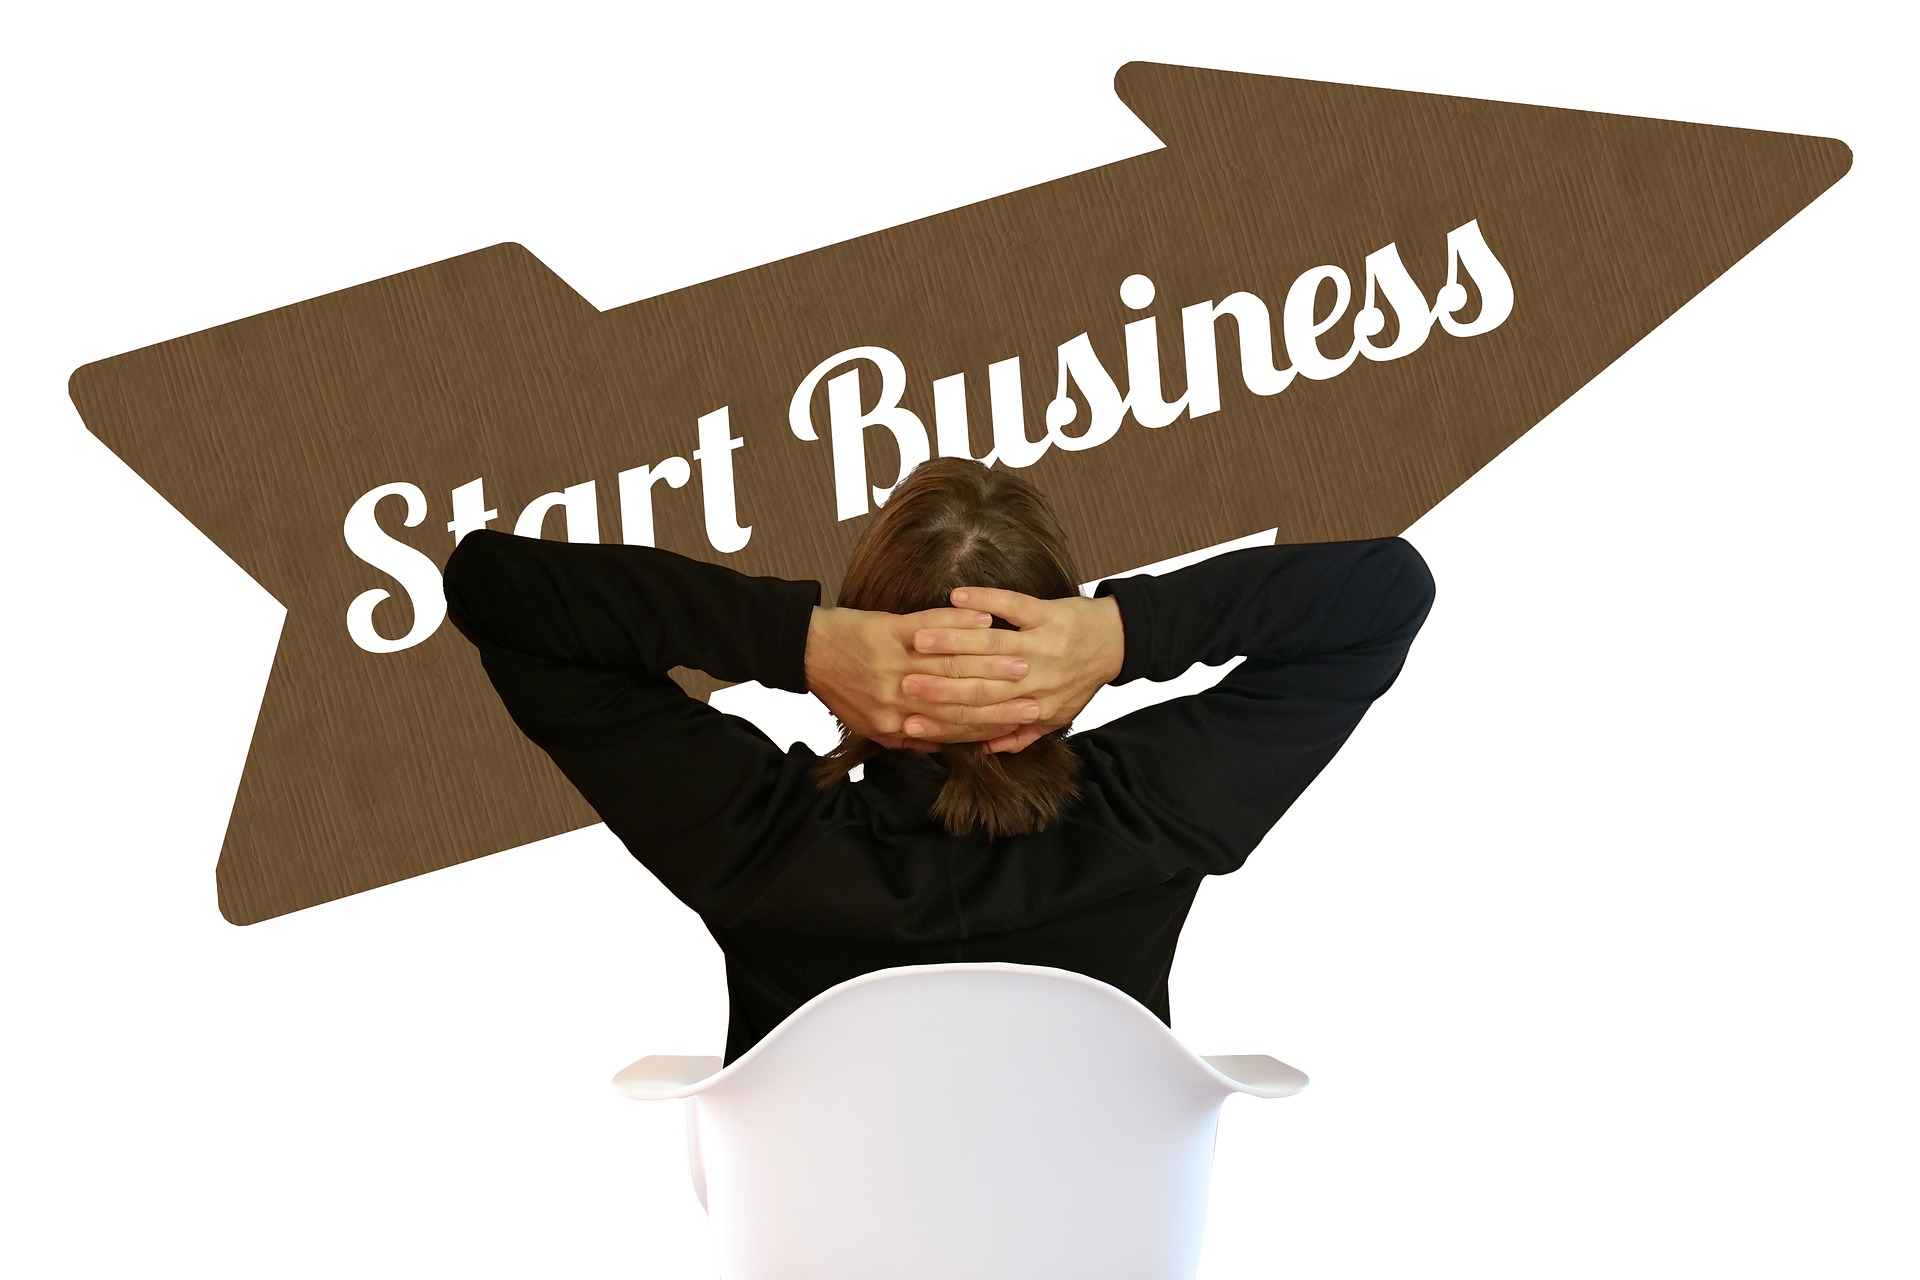 Existenzgründung- Start Business